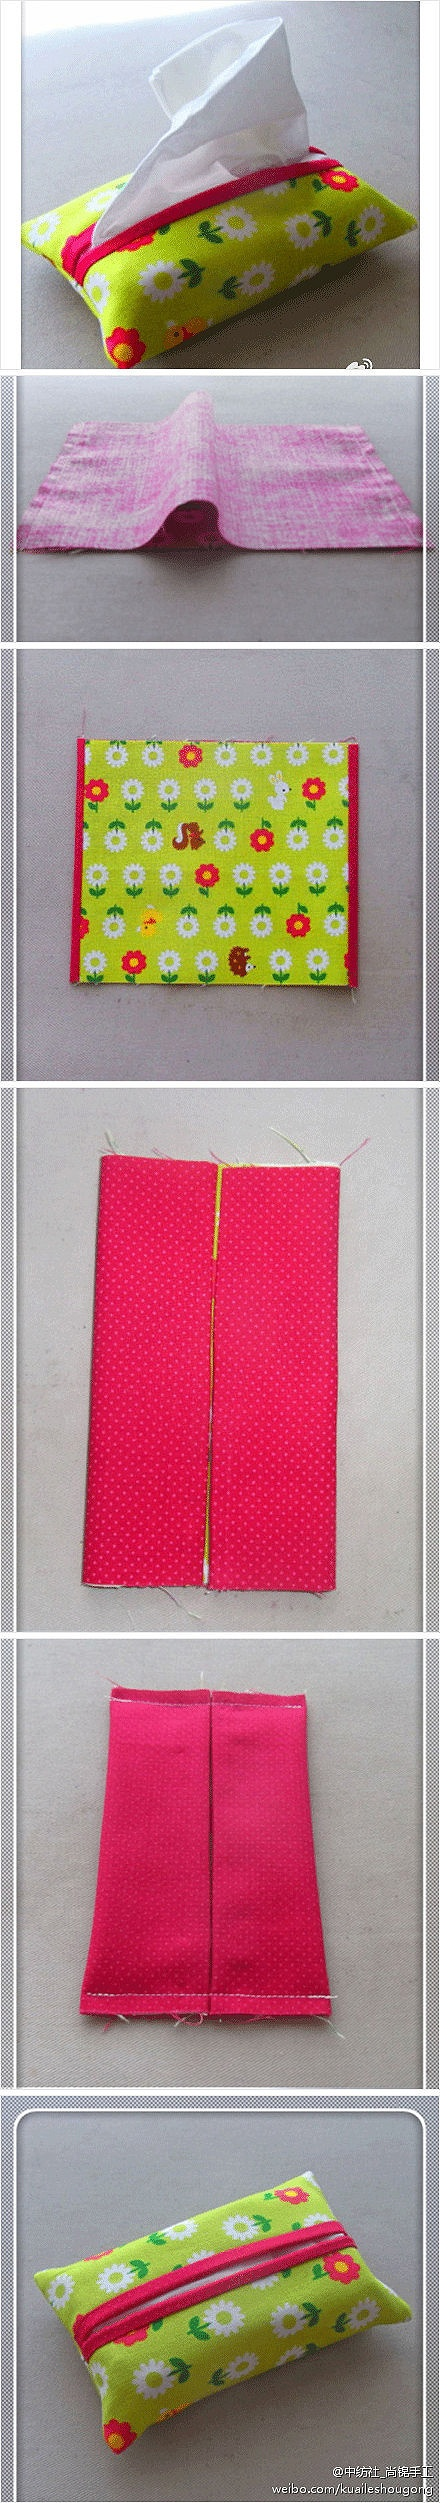 How to make a fabric tissue box!